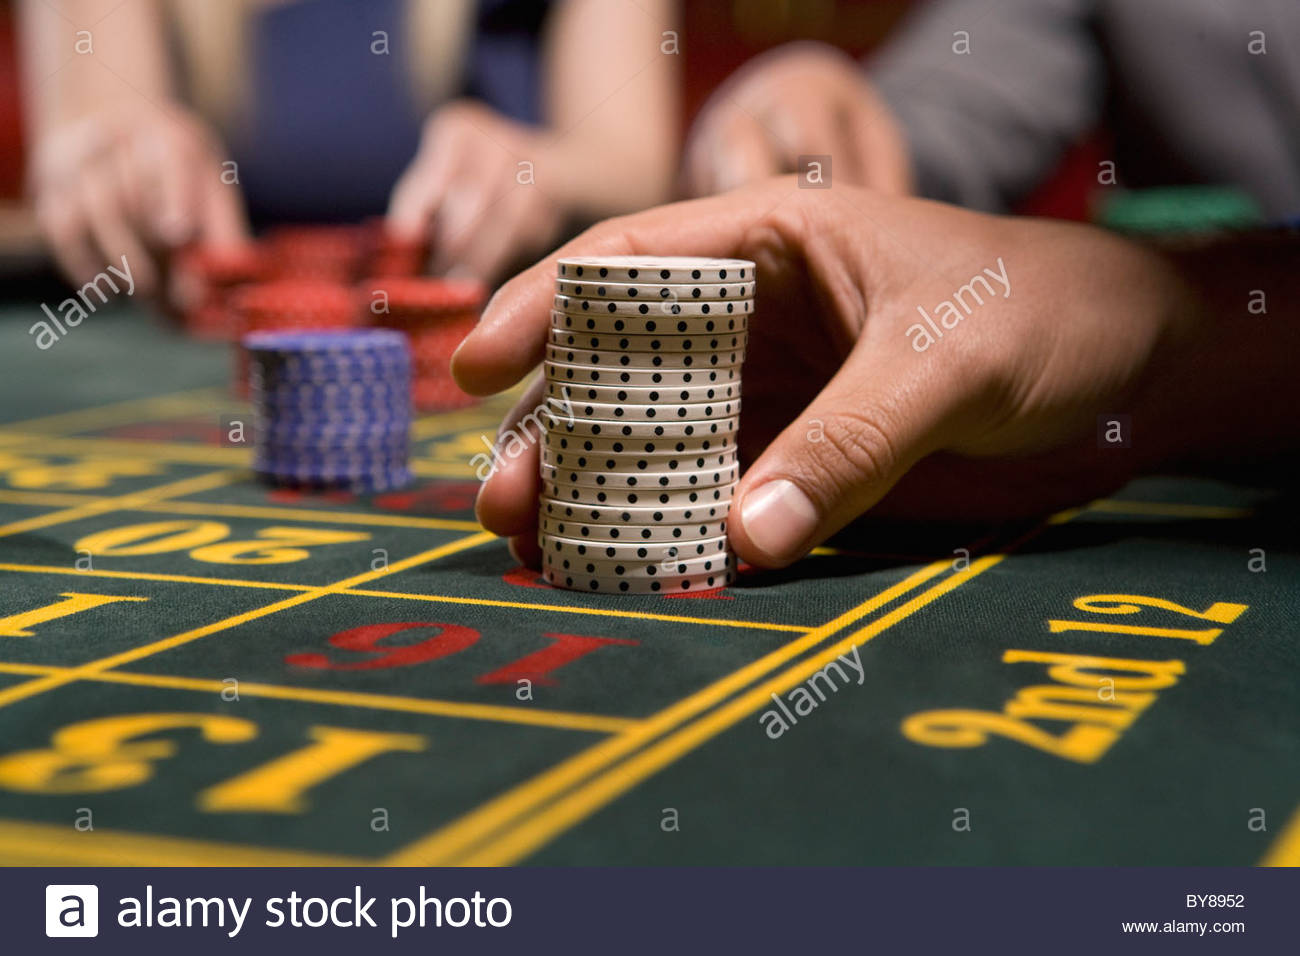 Man placing bet with gambling chips - Stock Image